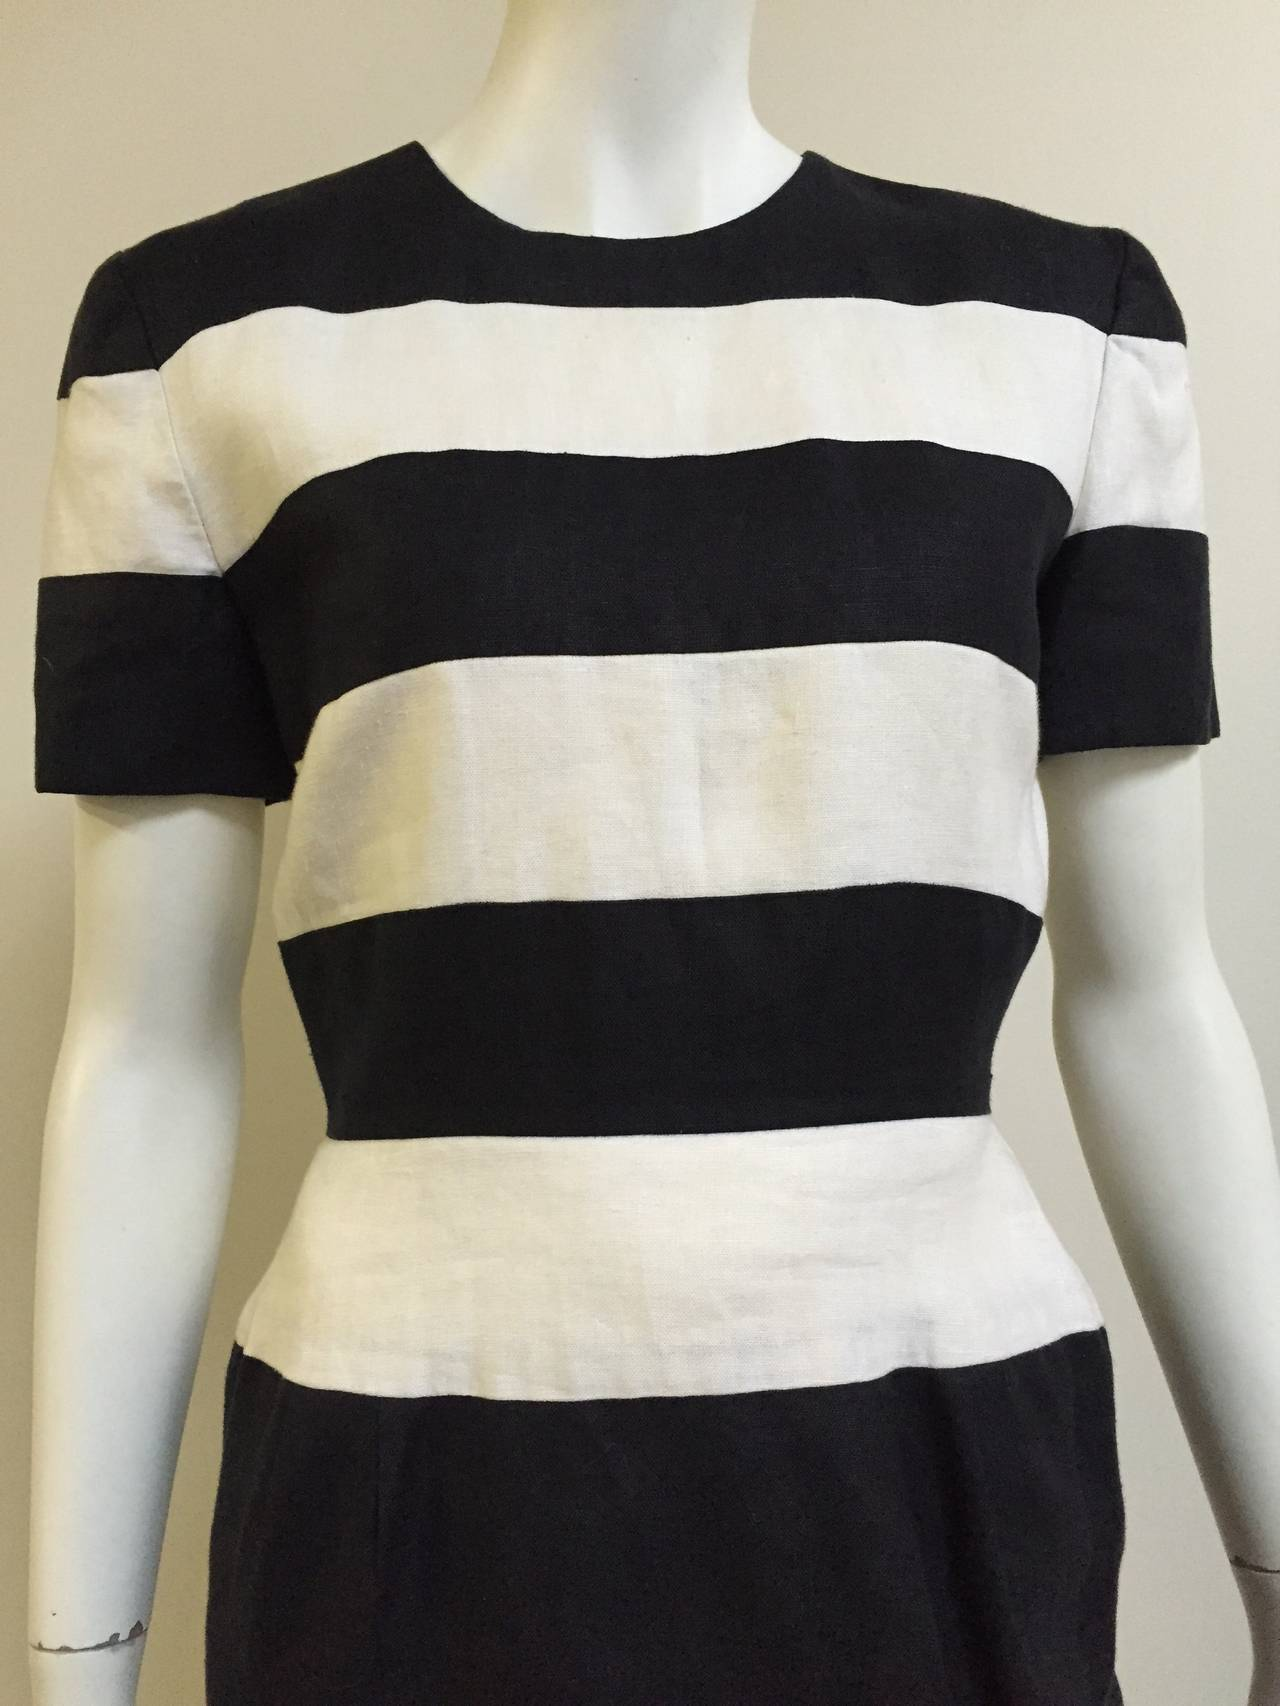 Scaasi 80s linen striped sheath dress size 4. 2